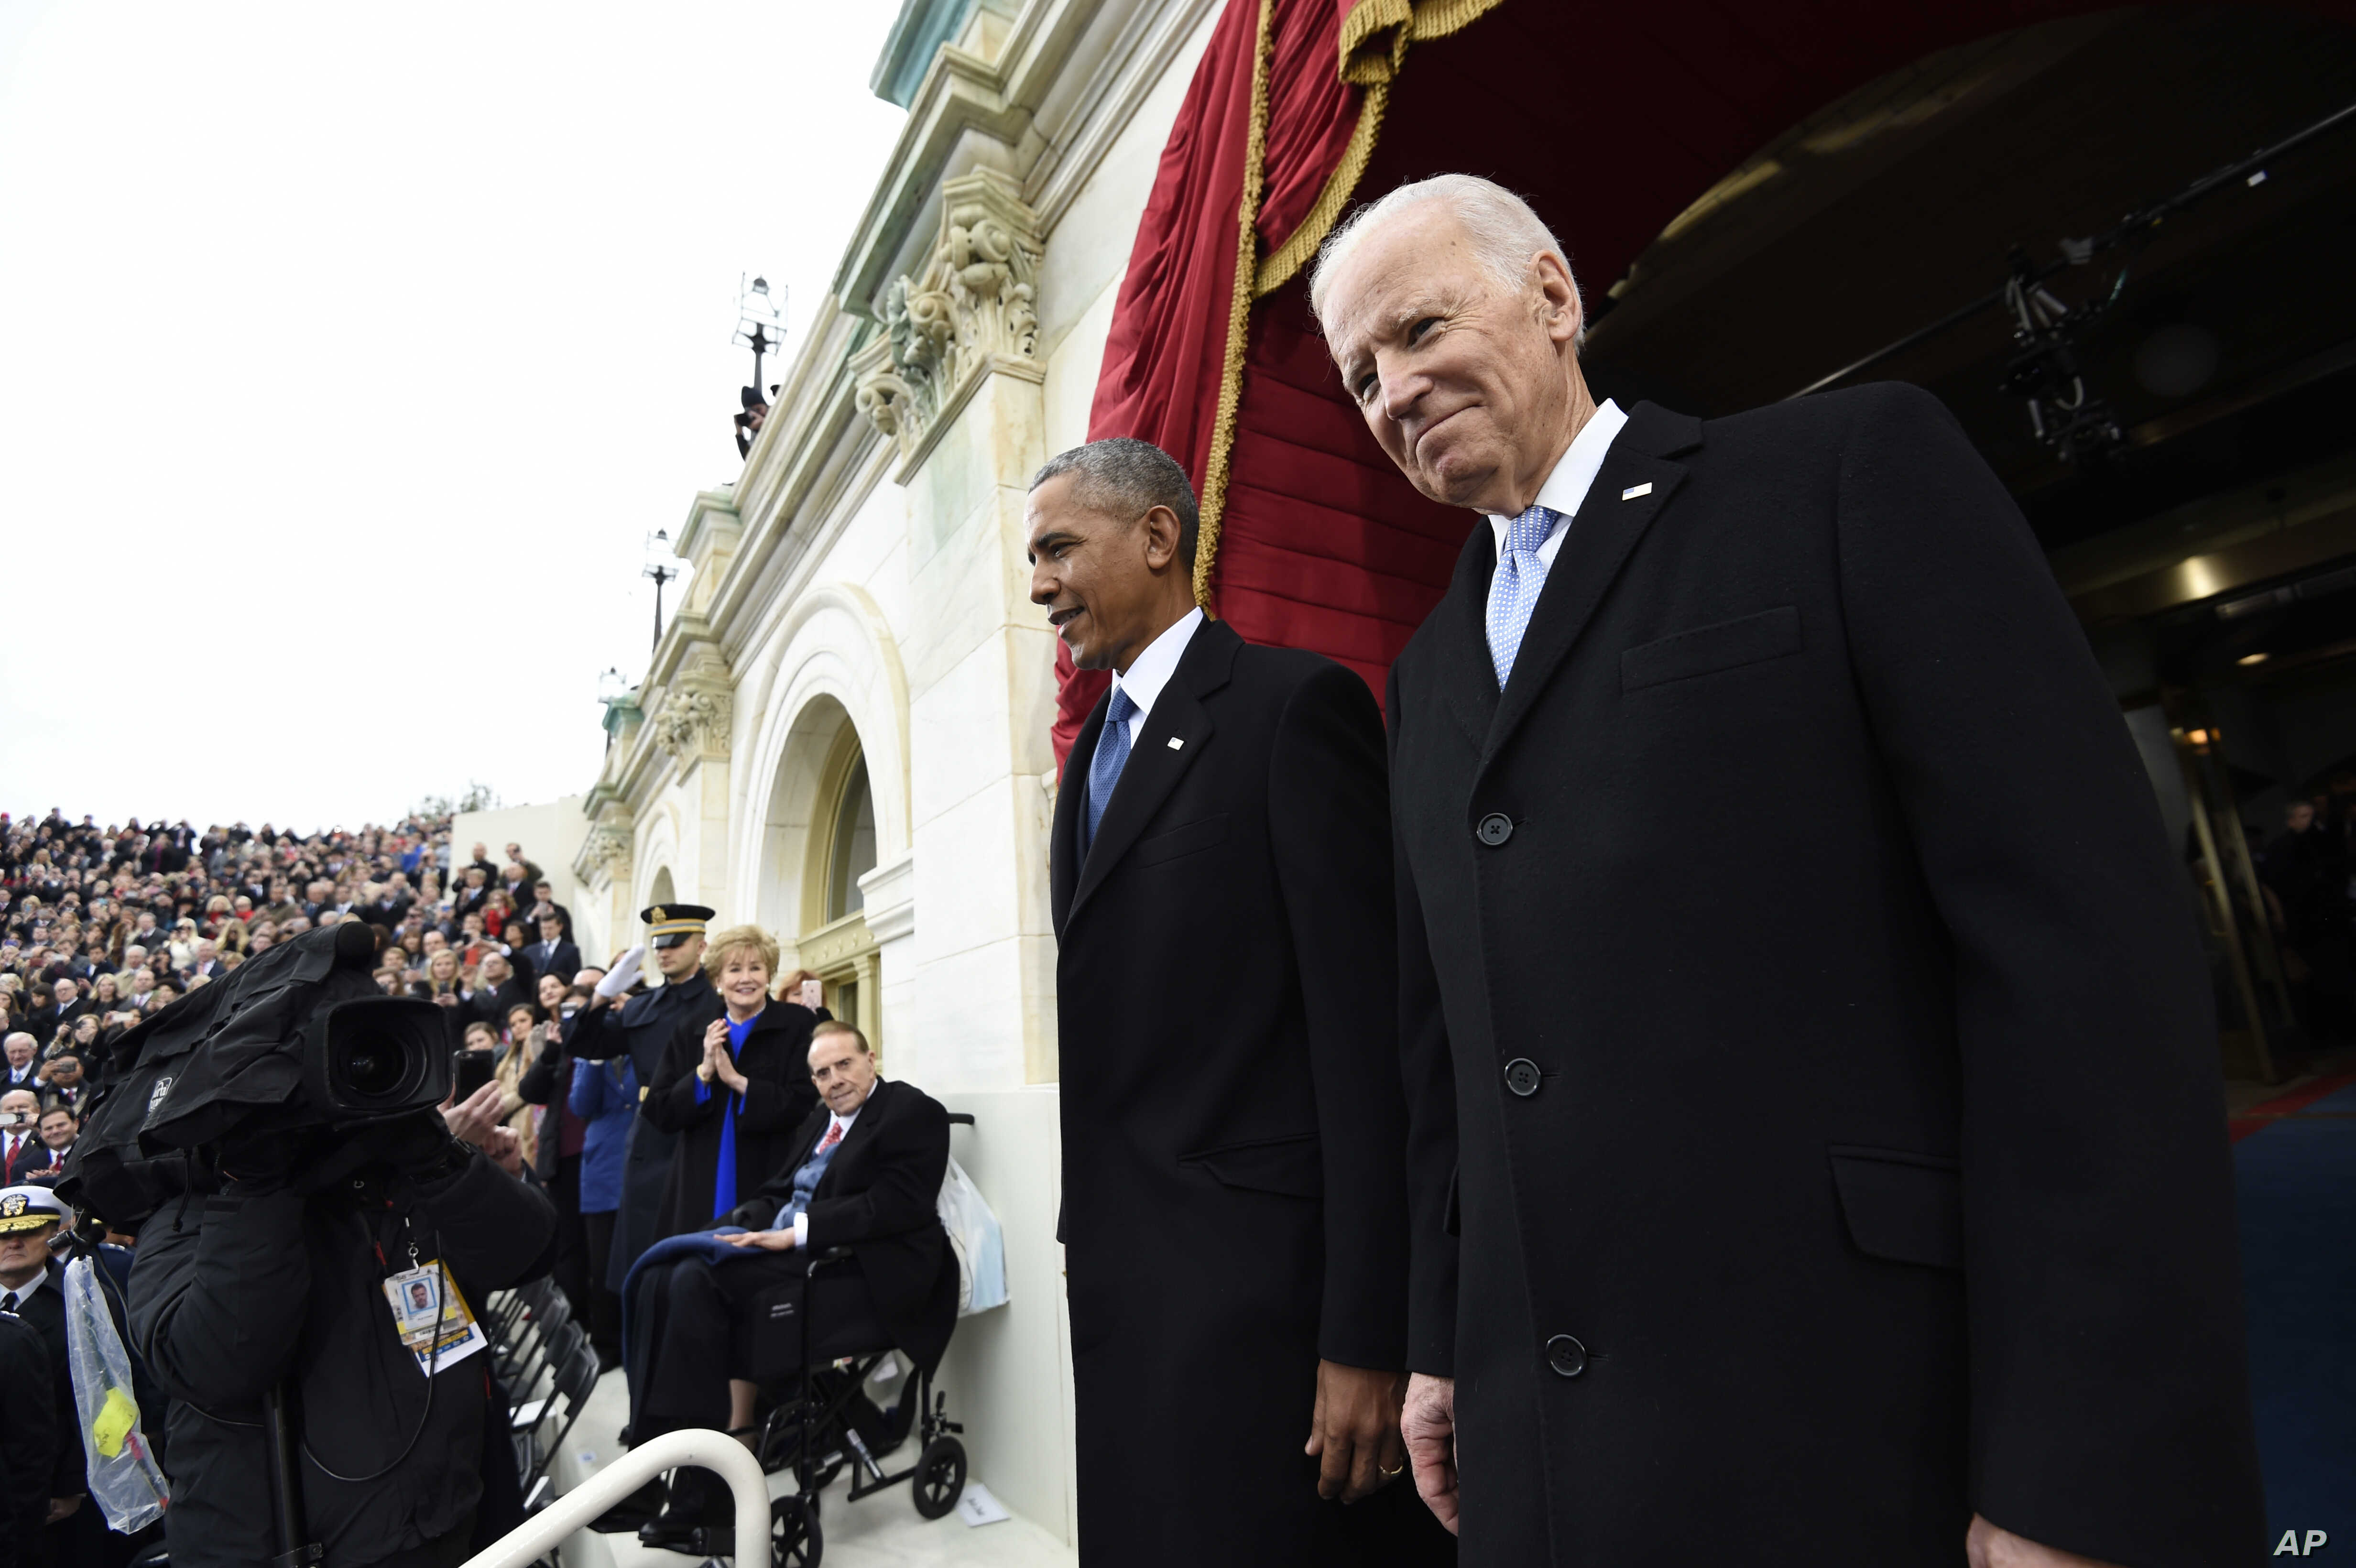 President Barack Obama and Vice President Joe Biden arrive for the Presidential Inauguration of Donald Trump, Jan, 20, 2017.